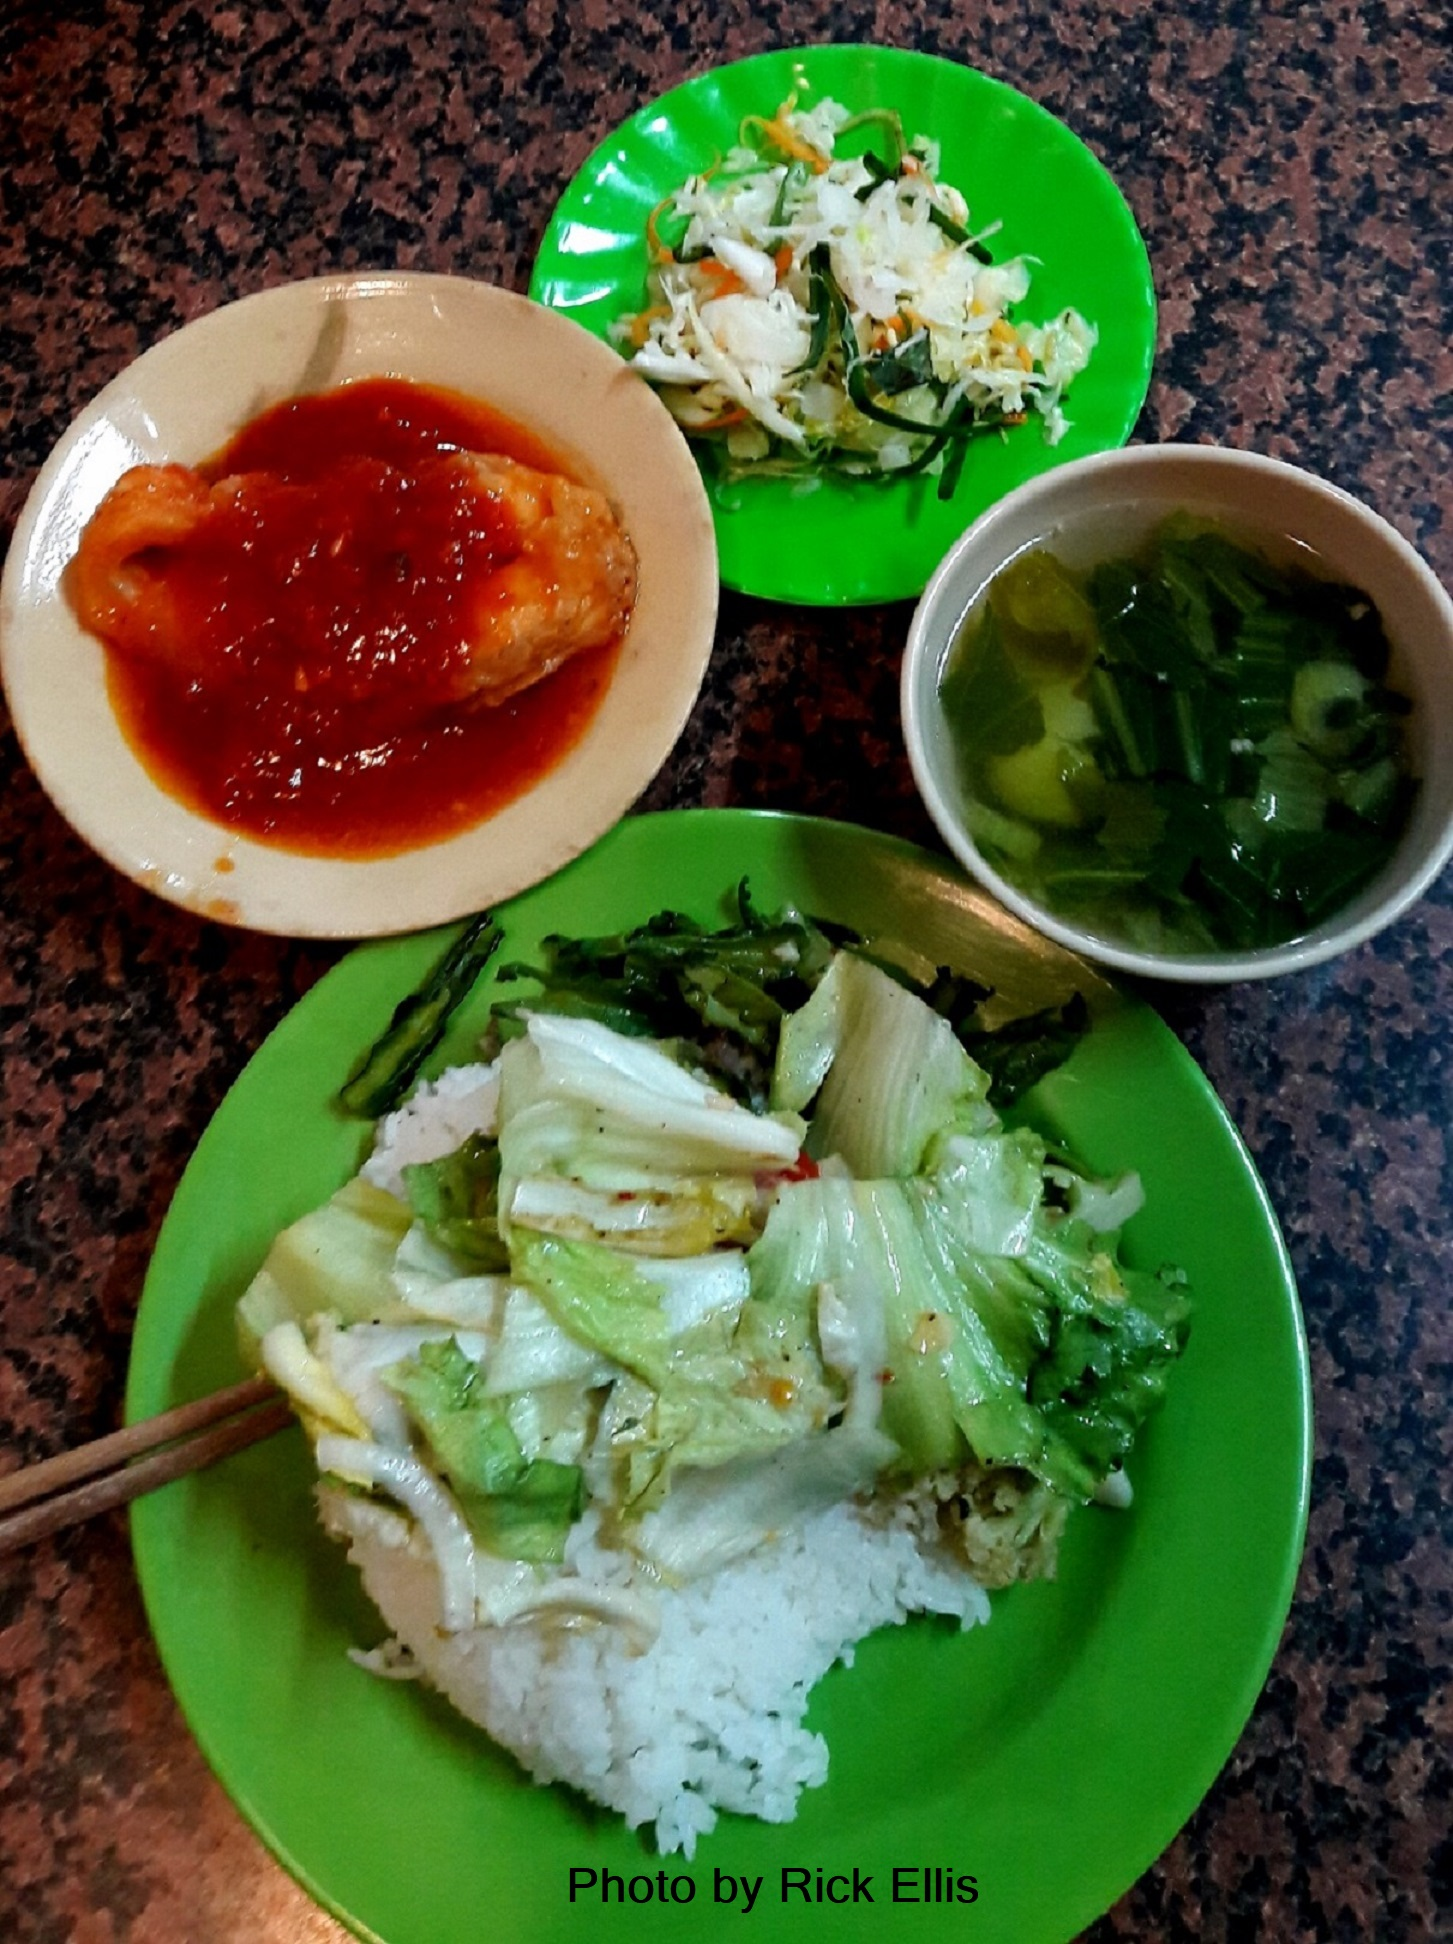 Typical com binh dan (working class) meal - VND30,000/$ 1.30